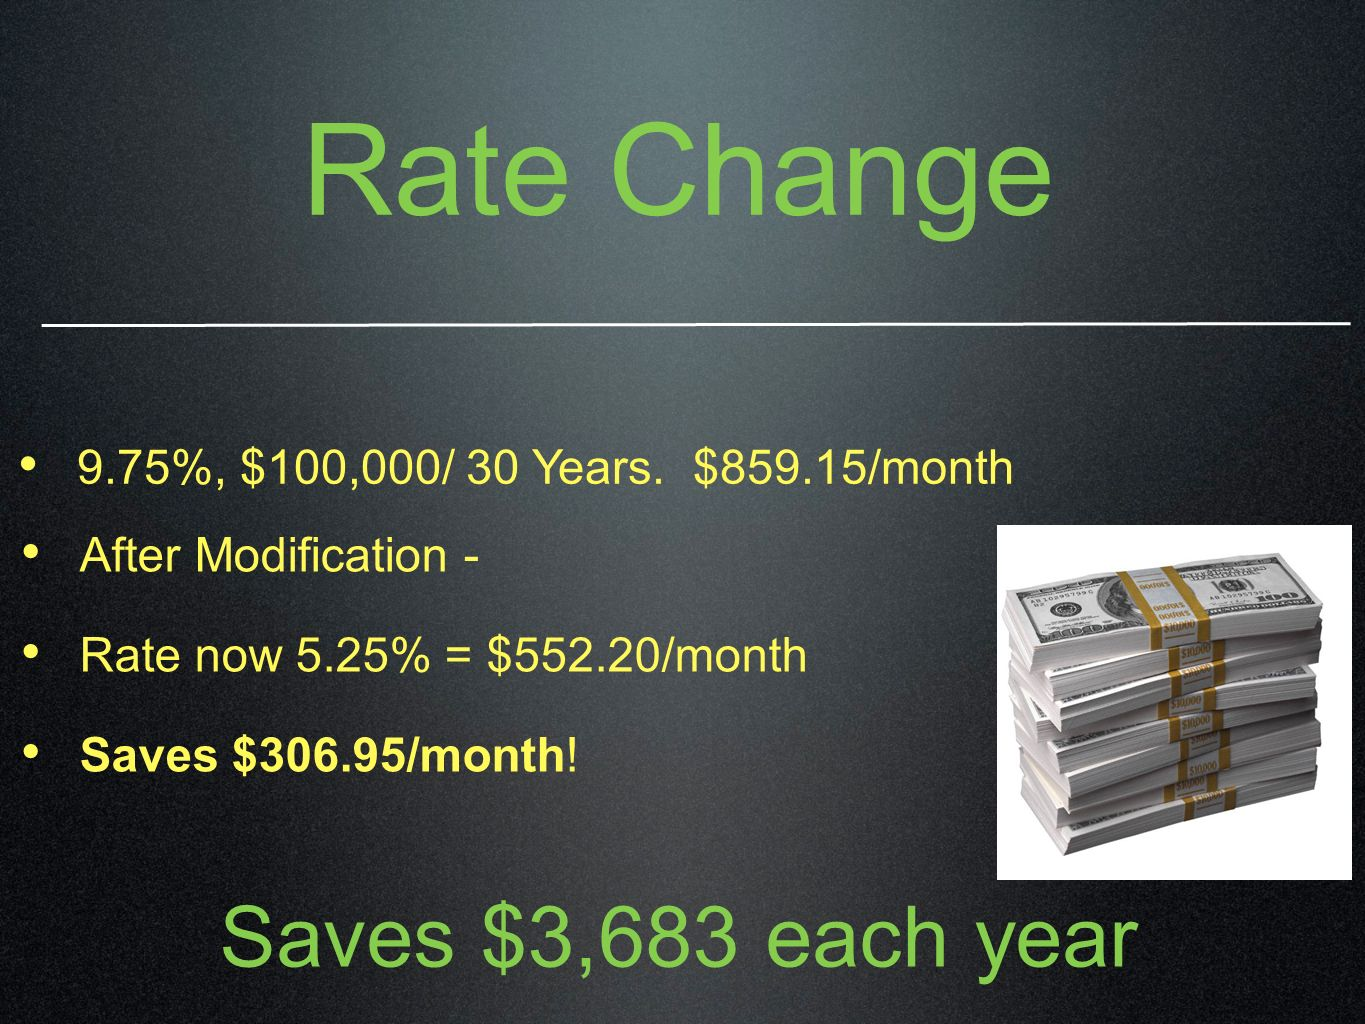 Rate Change After Modification - Rate now 5.25% = $552.20/month Saves $306.95/month.